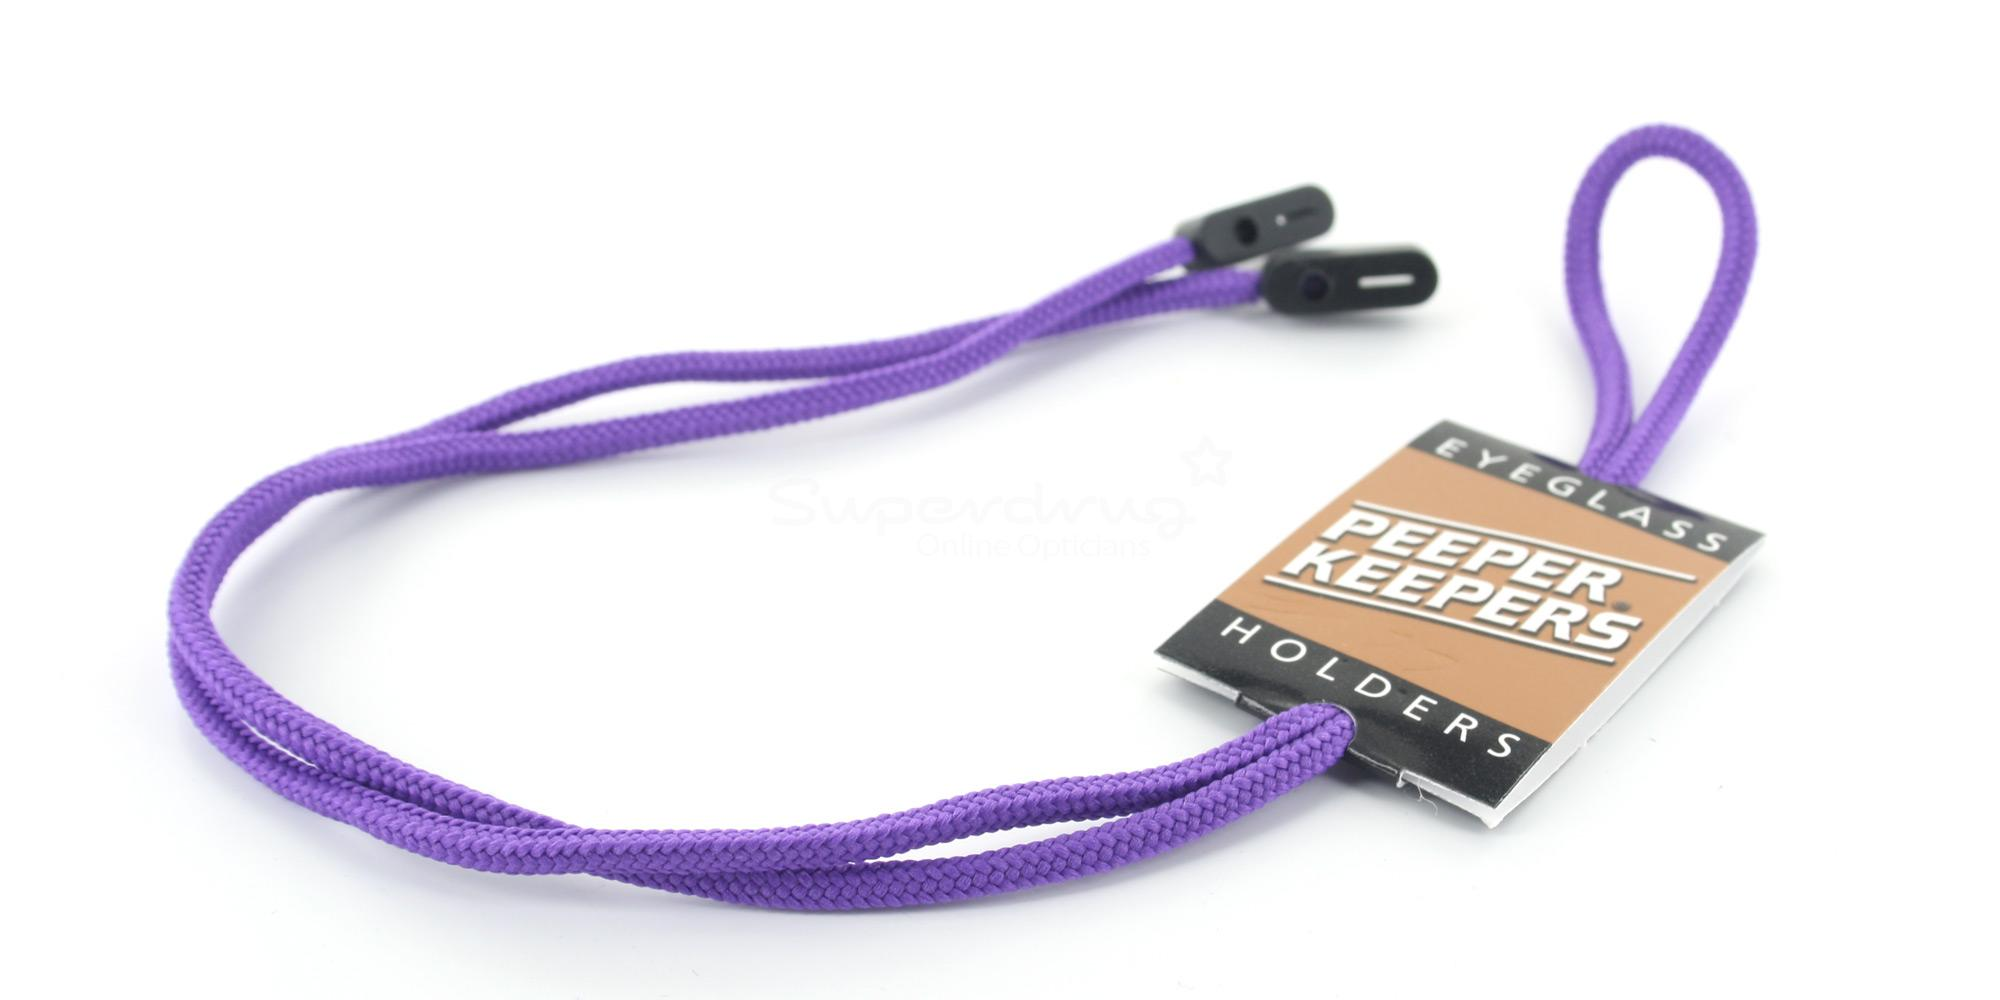 SCPR Supercord Purple Lanyard Accessories, Accessories by Superdrug